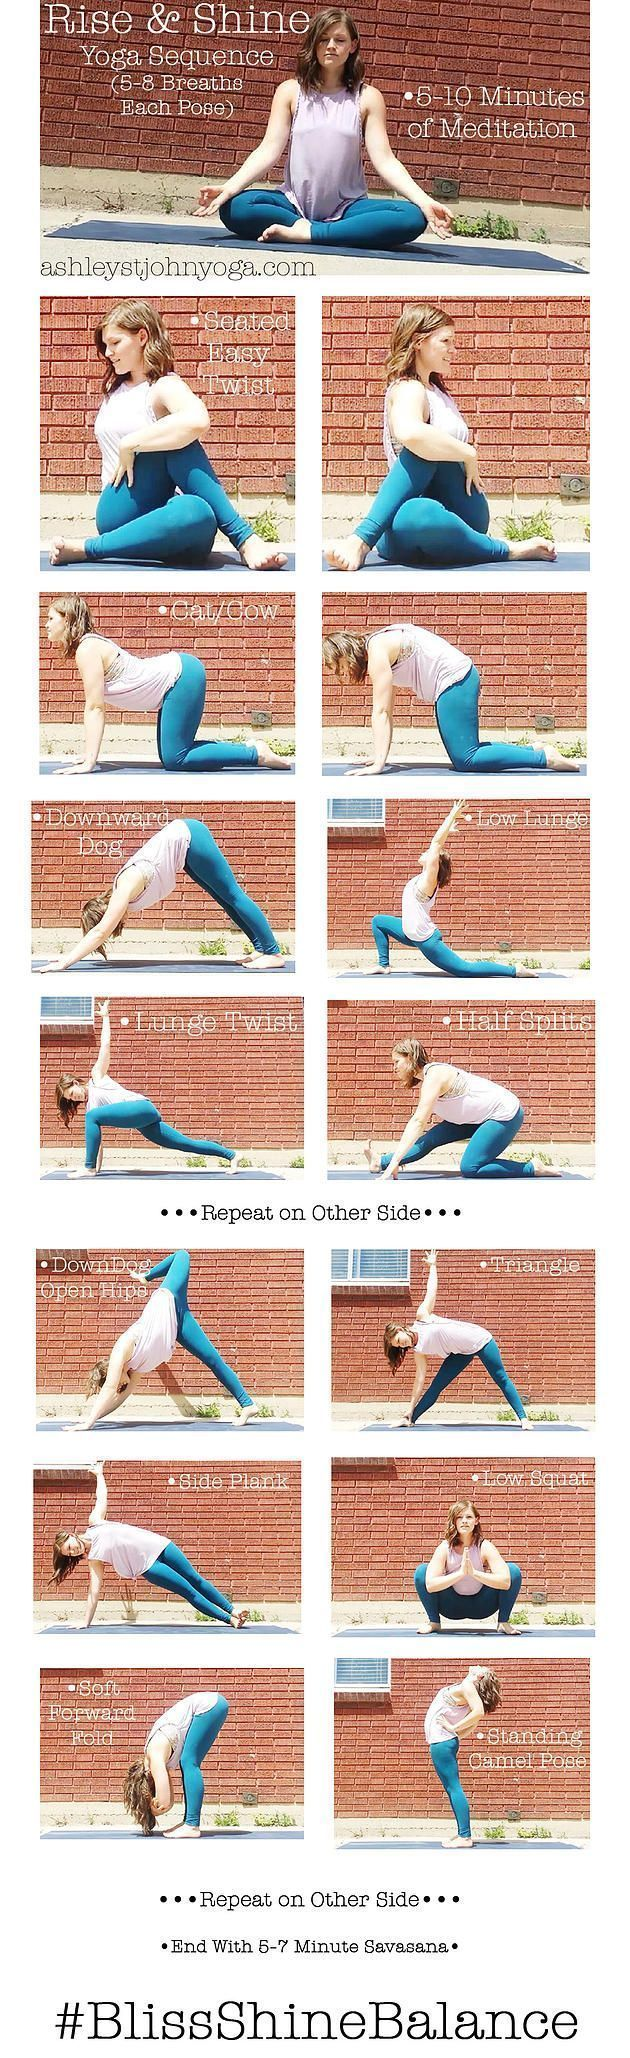 Rise & Shine AM Yoga Sequence ashleystjohnyoga.com